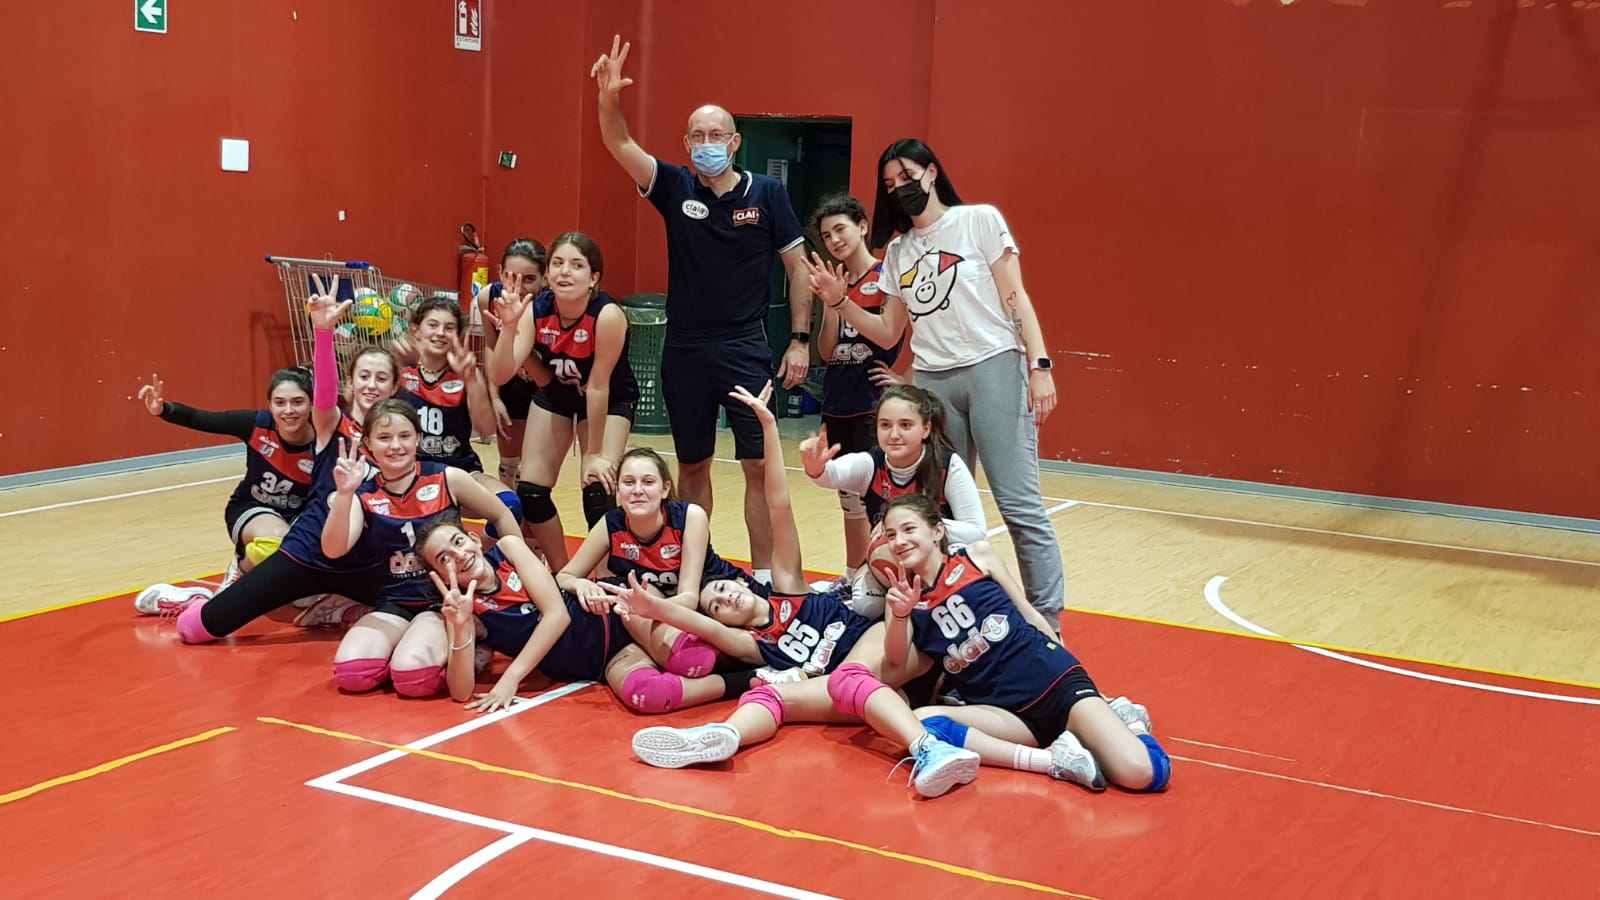 Vincono bene New Team in Under 15 e Csi Clai B in Under 13